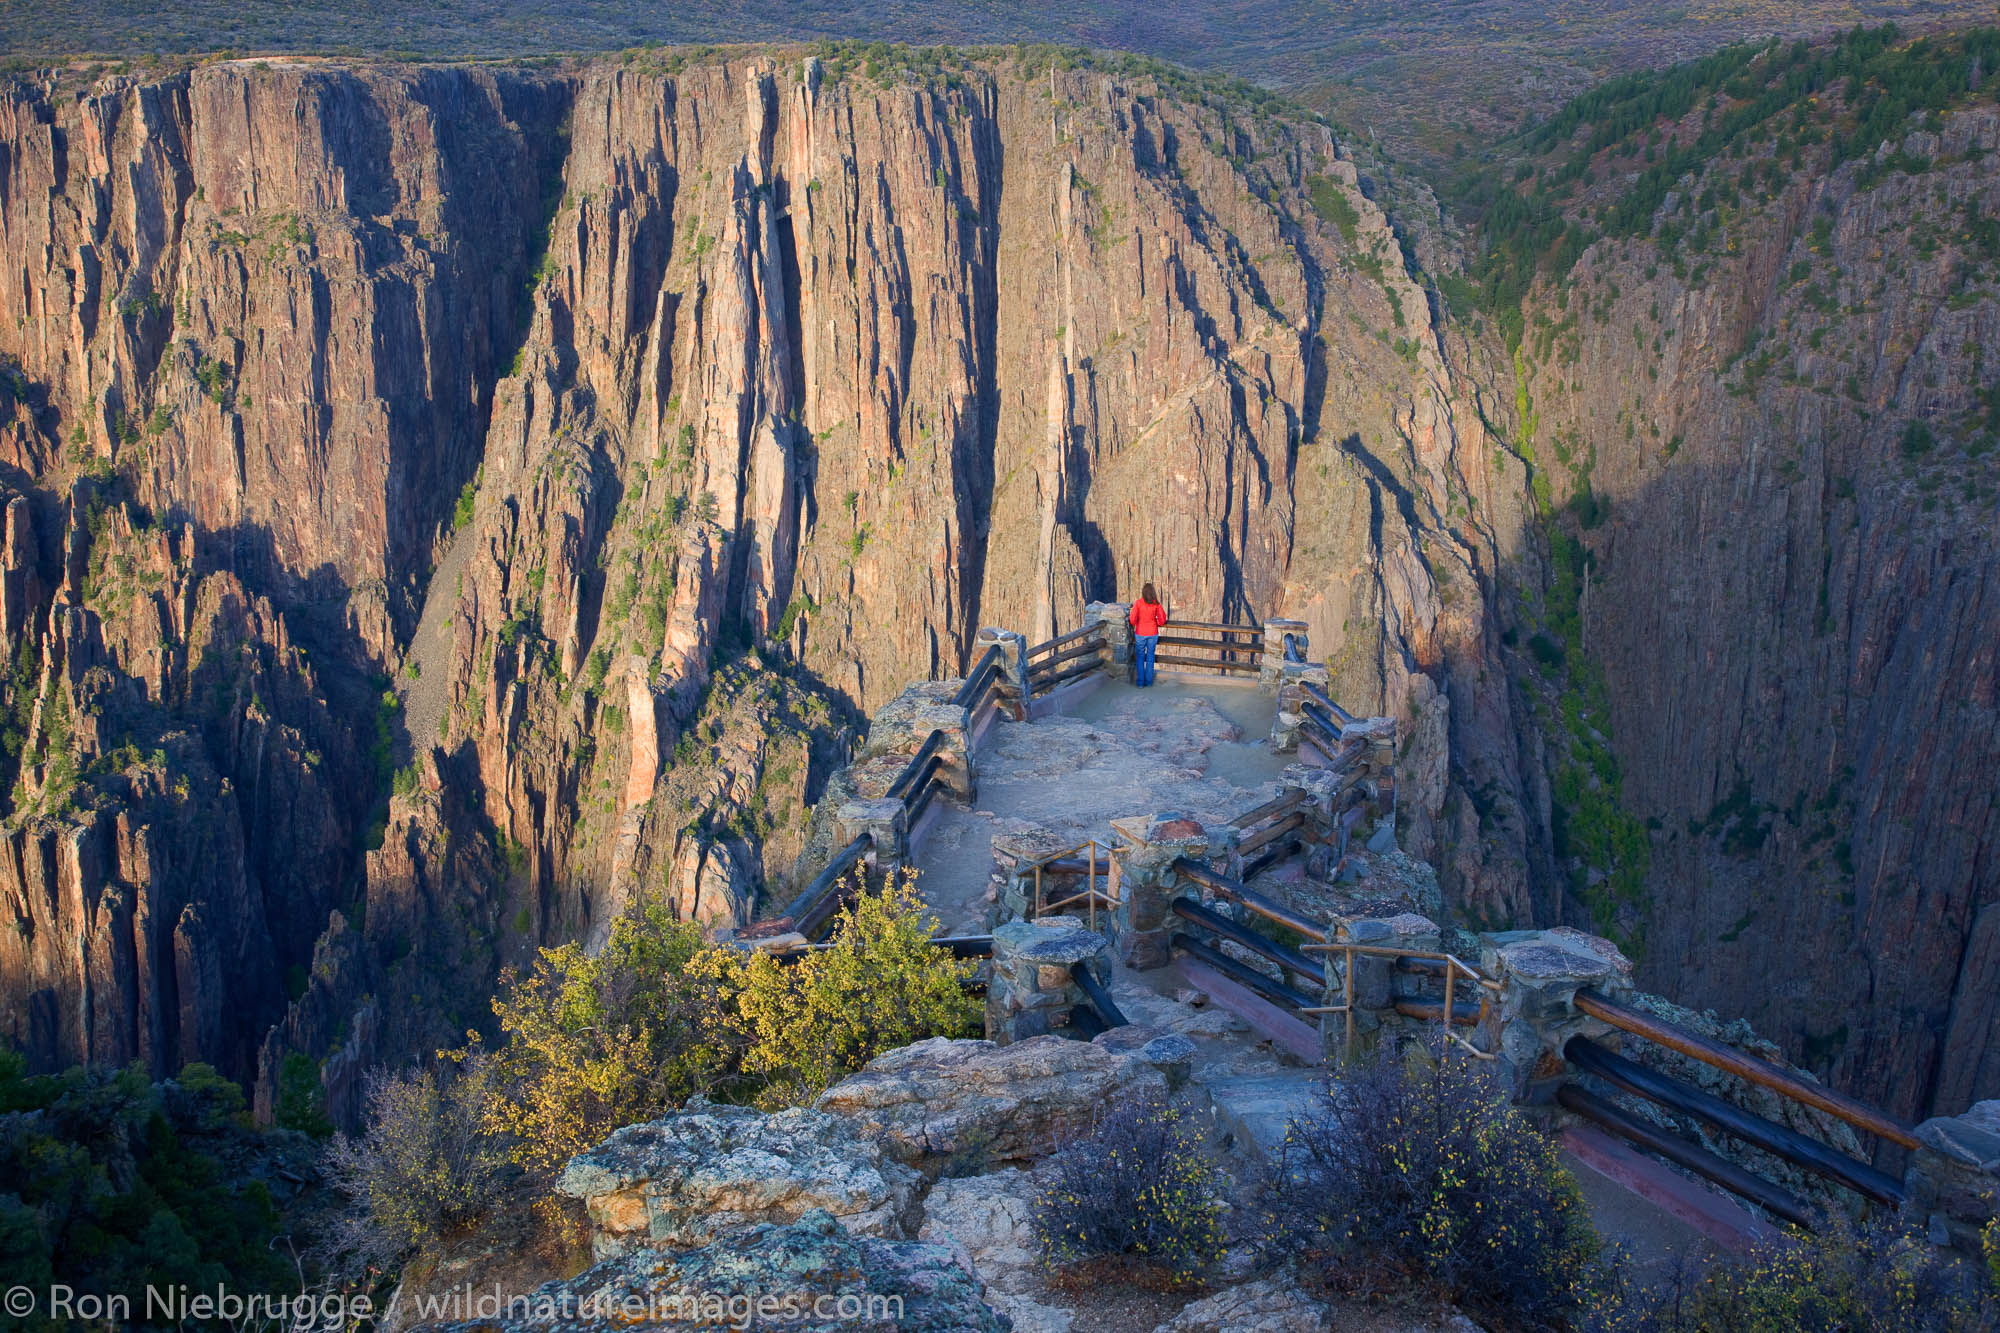 A hiker enjoys the viewpoint at Gunnison Point, Black Canyon of the Gunnison National Park, Colorado.  (model released)